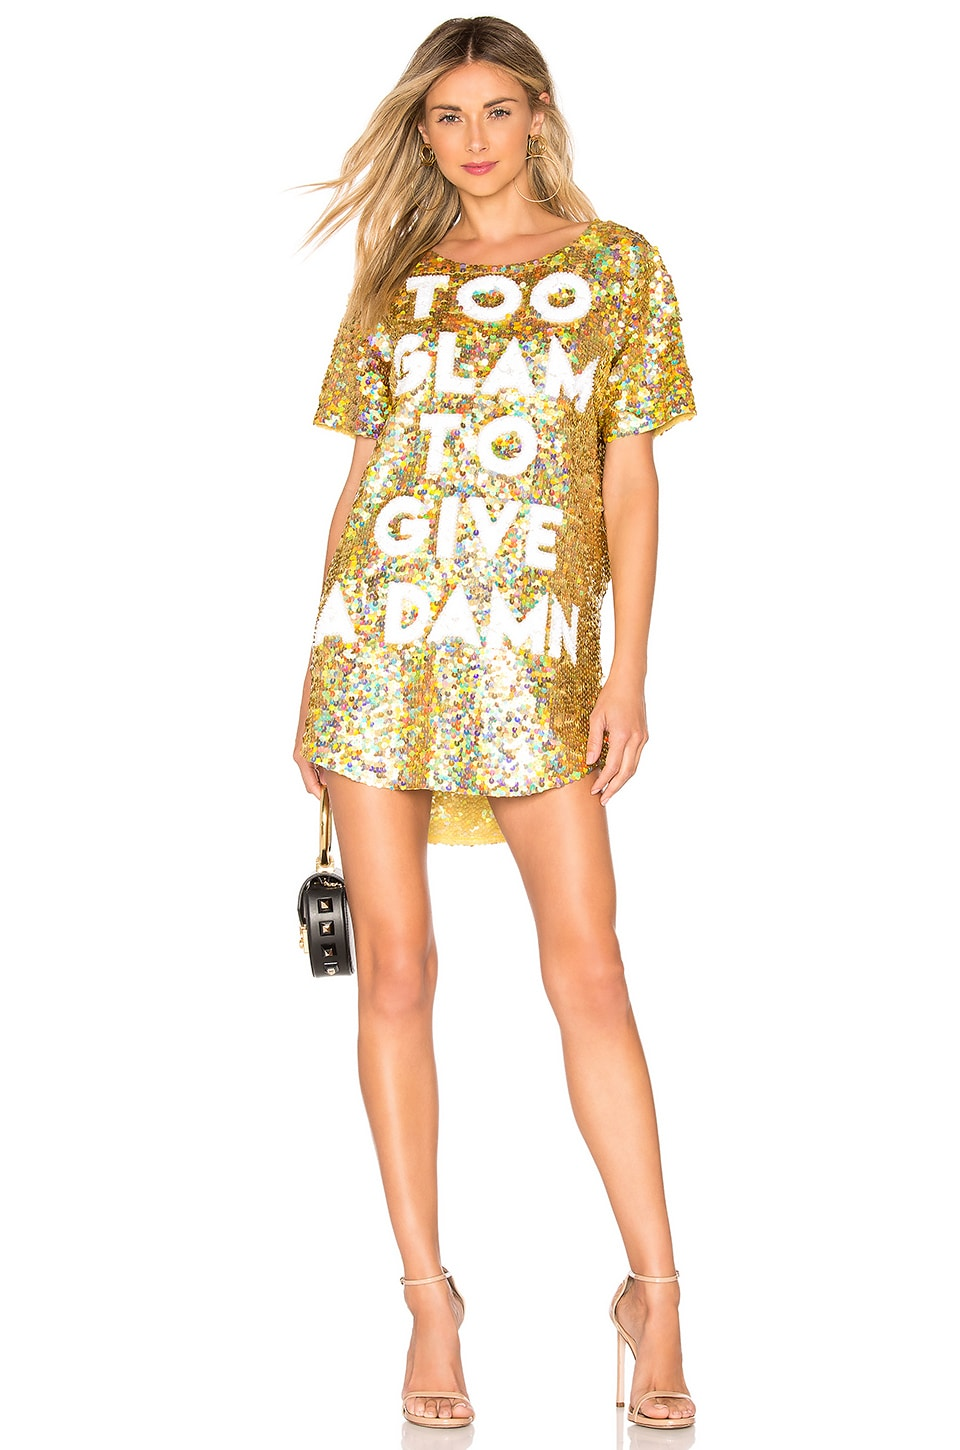 MUAMUADOLLS Too Glam To Give A Damn Dress in Metallic Gold